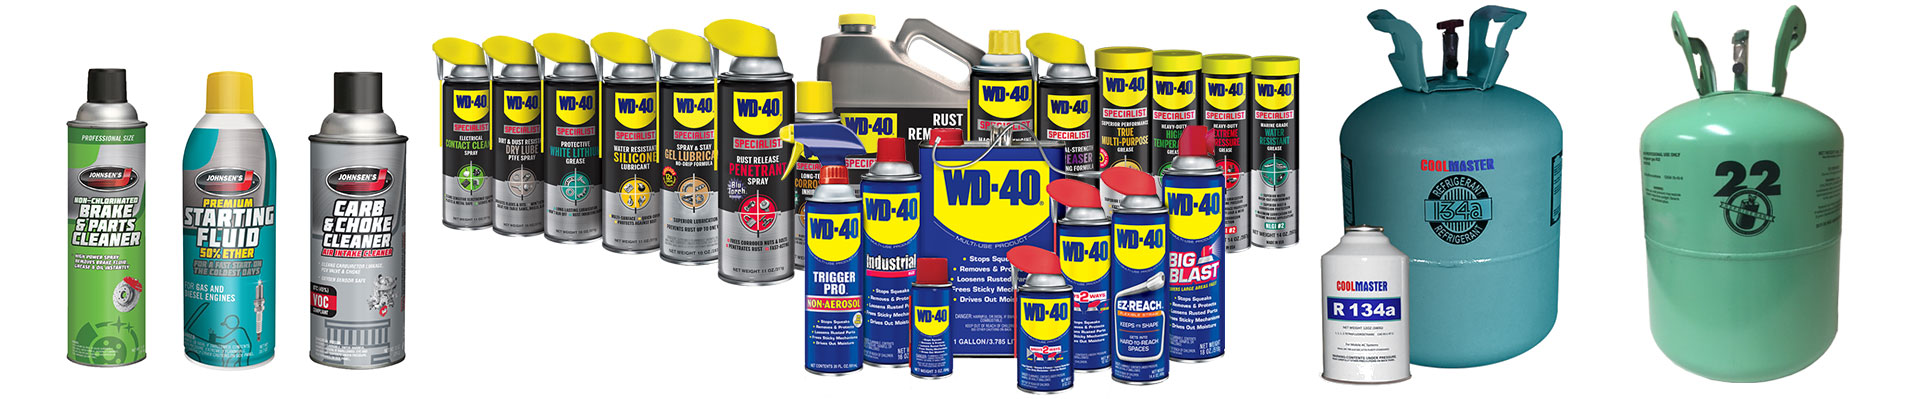 AEROSOL-CLEANERS-FUNCTIONAL-PRODUCTS-&-PENETRATING-OILS-Sutton